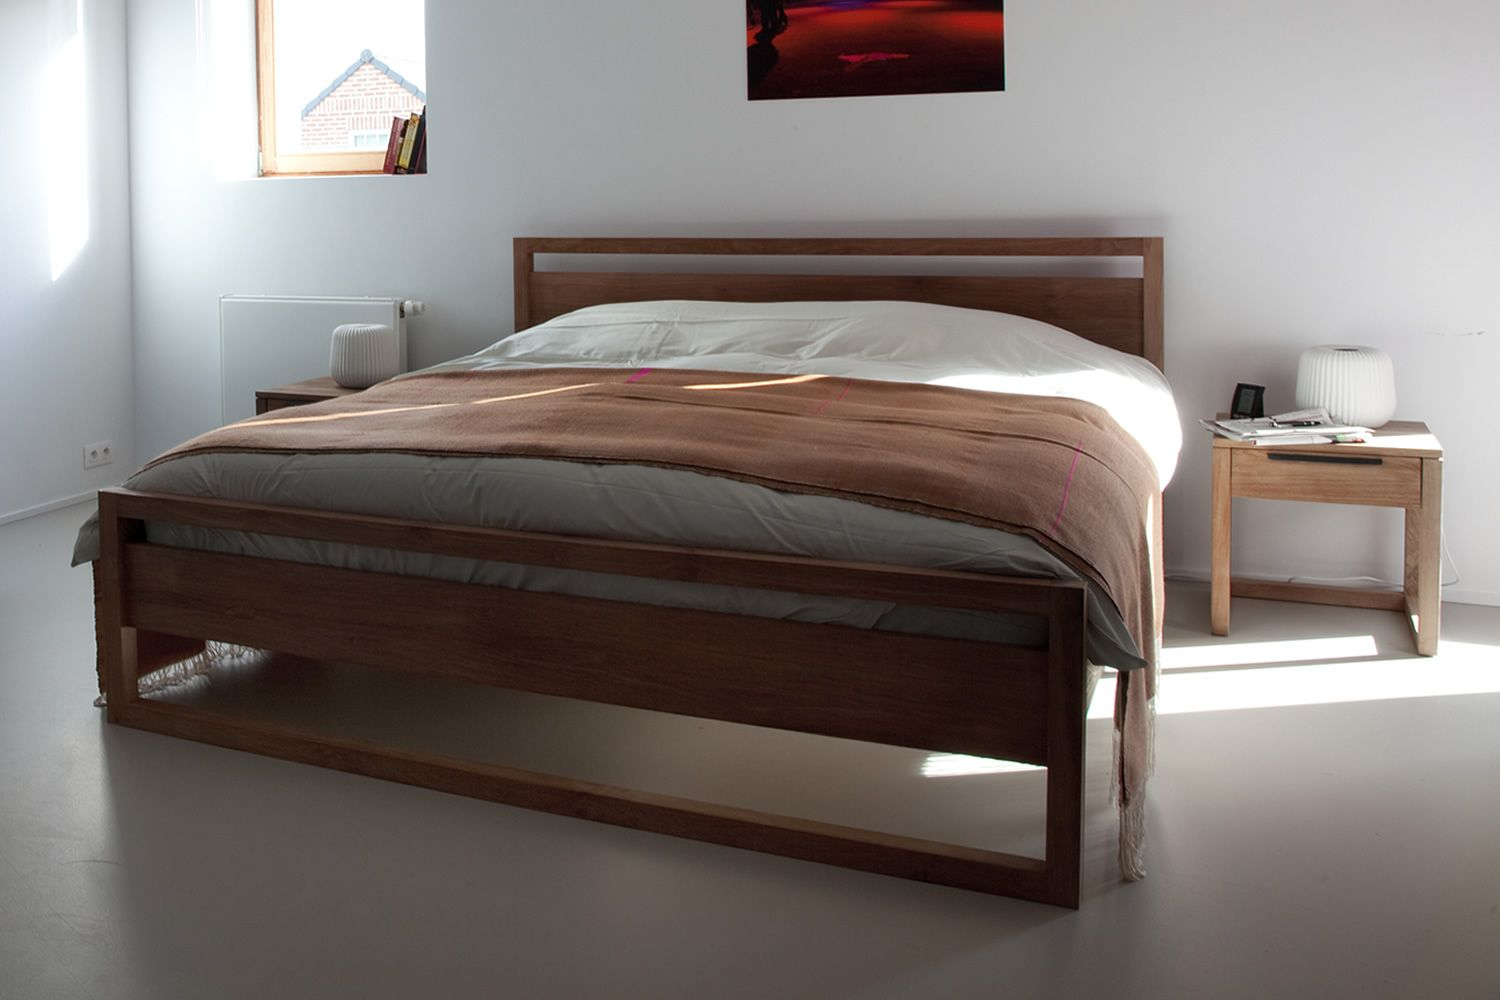 Madra Bed Ethnicraft : Light frame ethnicraft double bed with teak frame different